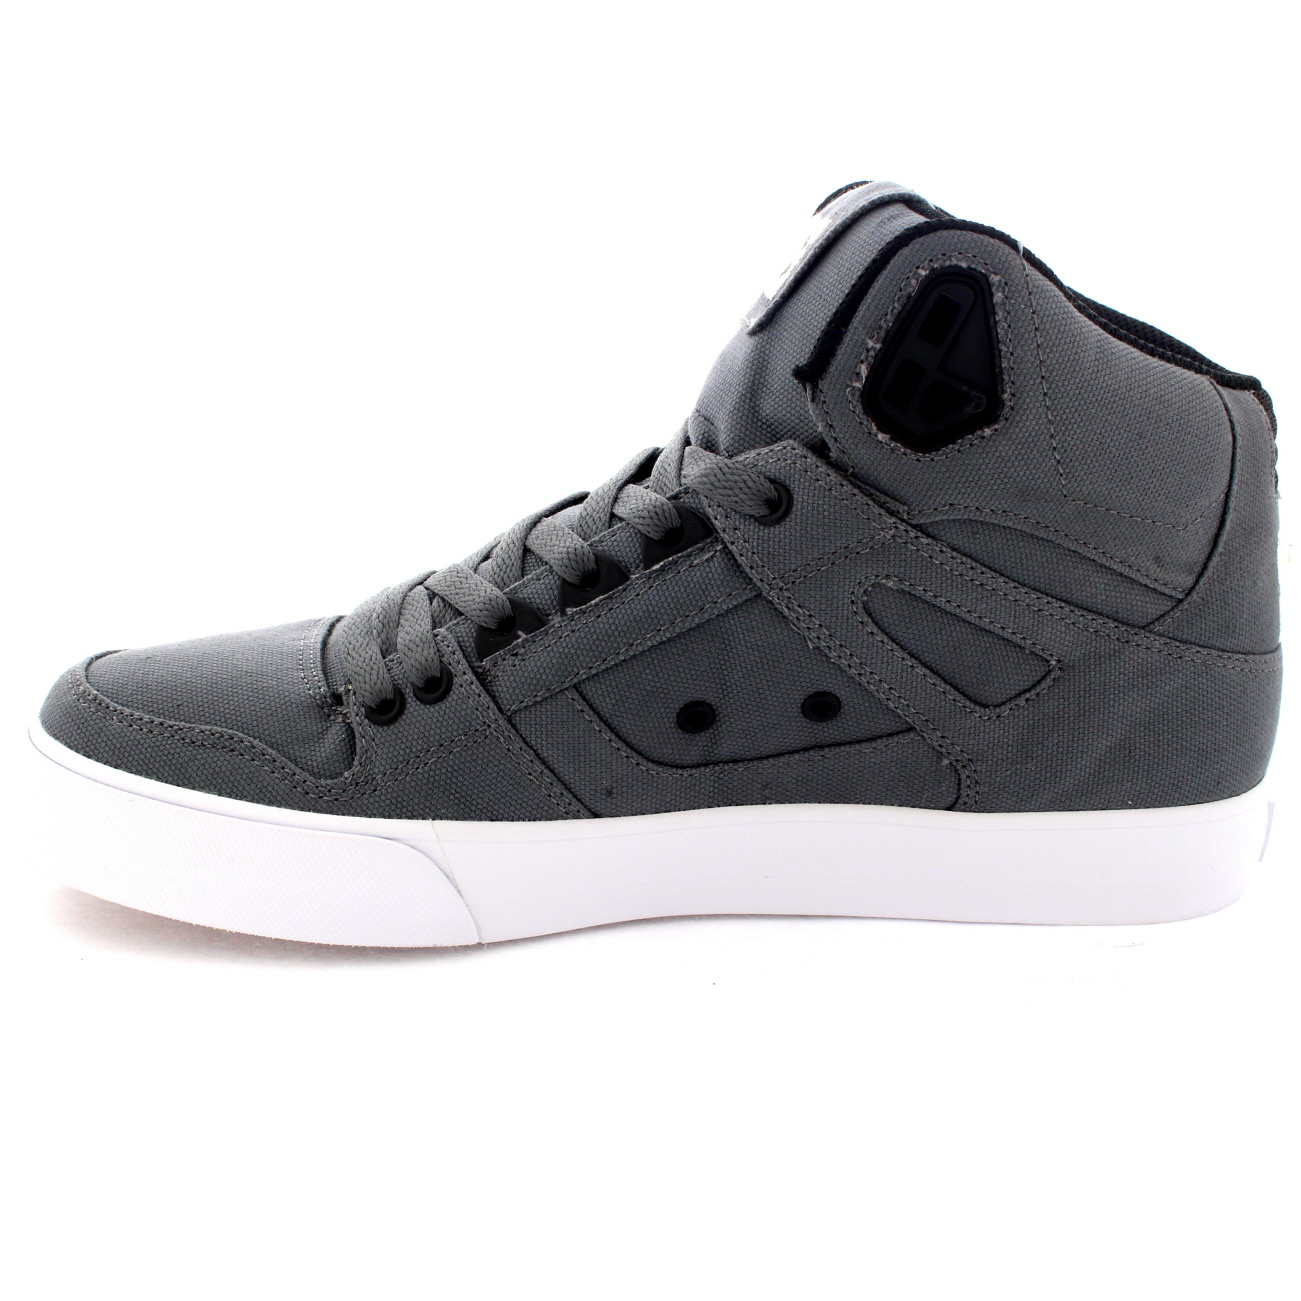 DC Shoes | Men's Hi Tops & Skate Shoes | schuhEasy 1 year returns· Free Click & Collect· Free Delivery over £· Next Day DeliveryStyles: Heathrow, Evan Smith, Course 2, Crisis, Trase, Astor, Spartan.